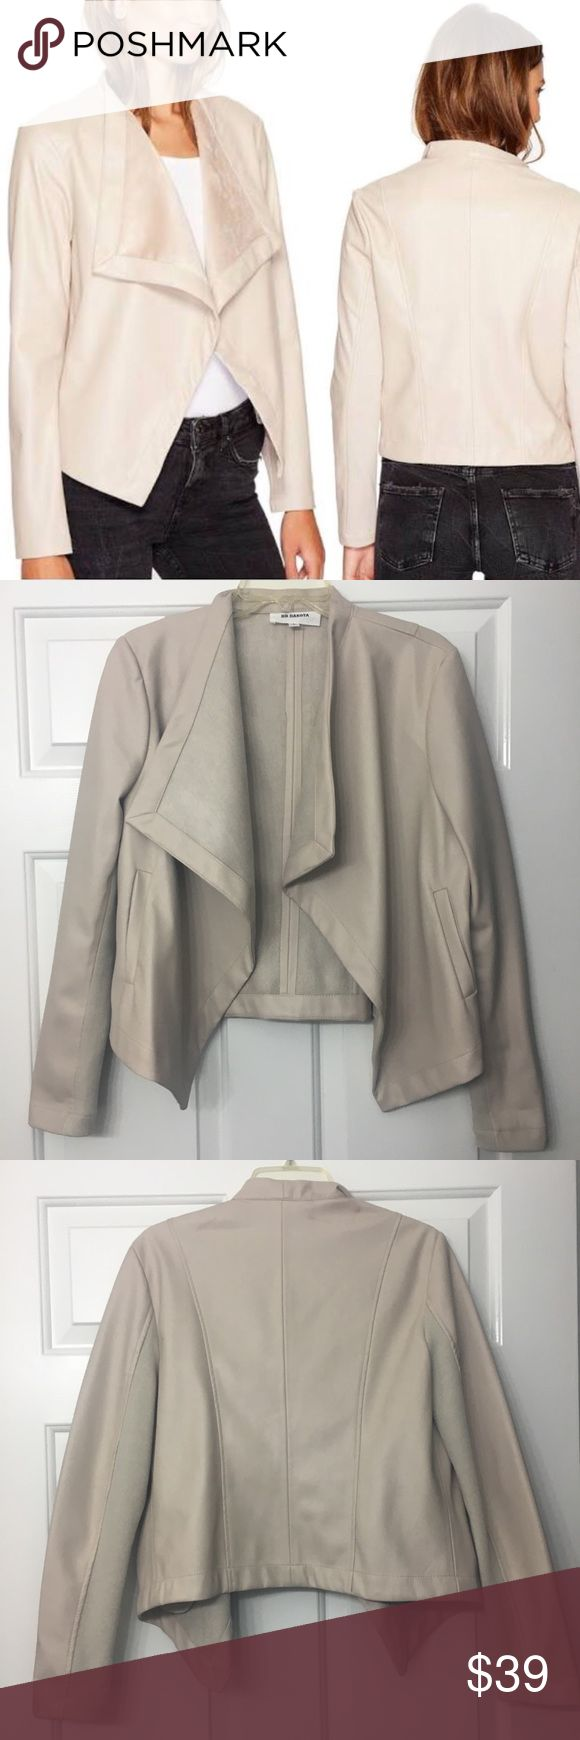 BB Dakota Ivory Peppin Faux Leather Jacket Faux vegan leather. Very soft. Color true to pictured on door. Worn once. NOTE red marks pictured, from hanging next to a red faux leather jacket in the closet. Have not tried cleaning. Price reflects flaws. BB Dakota Jackets & Coats